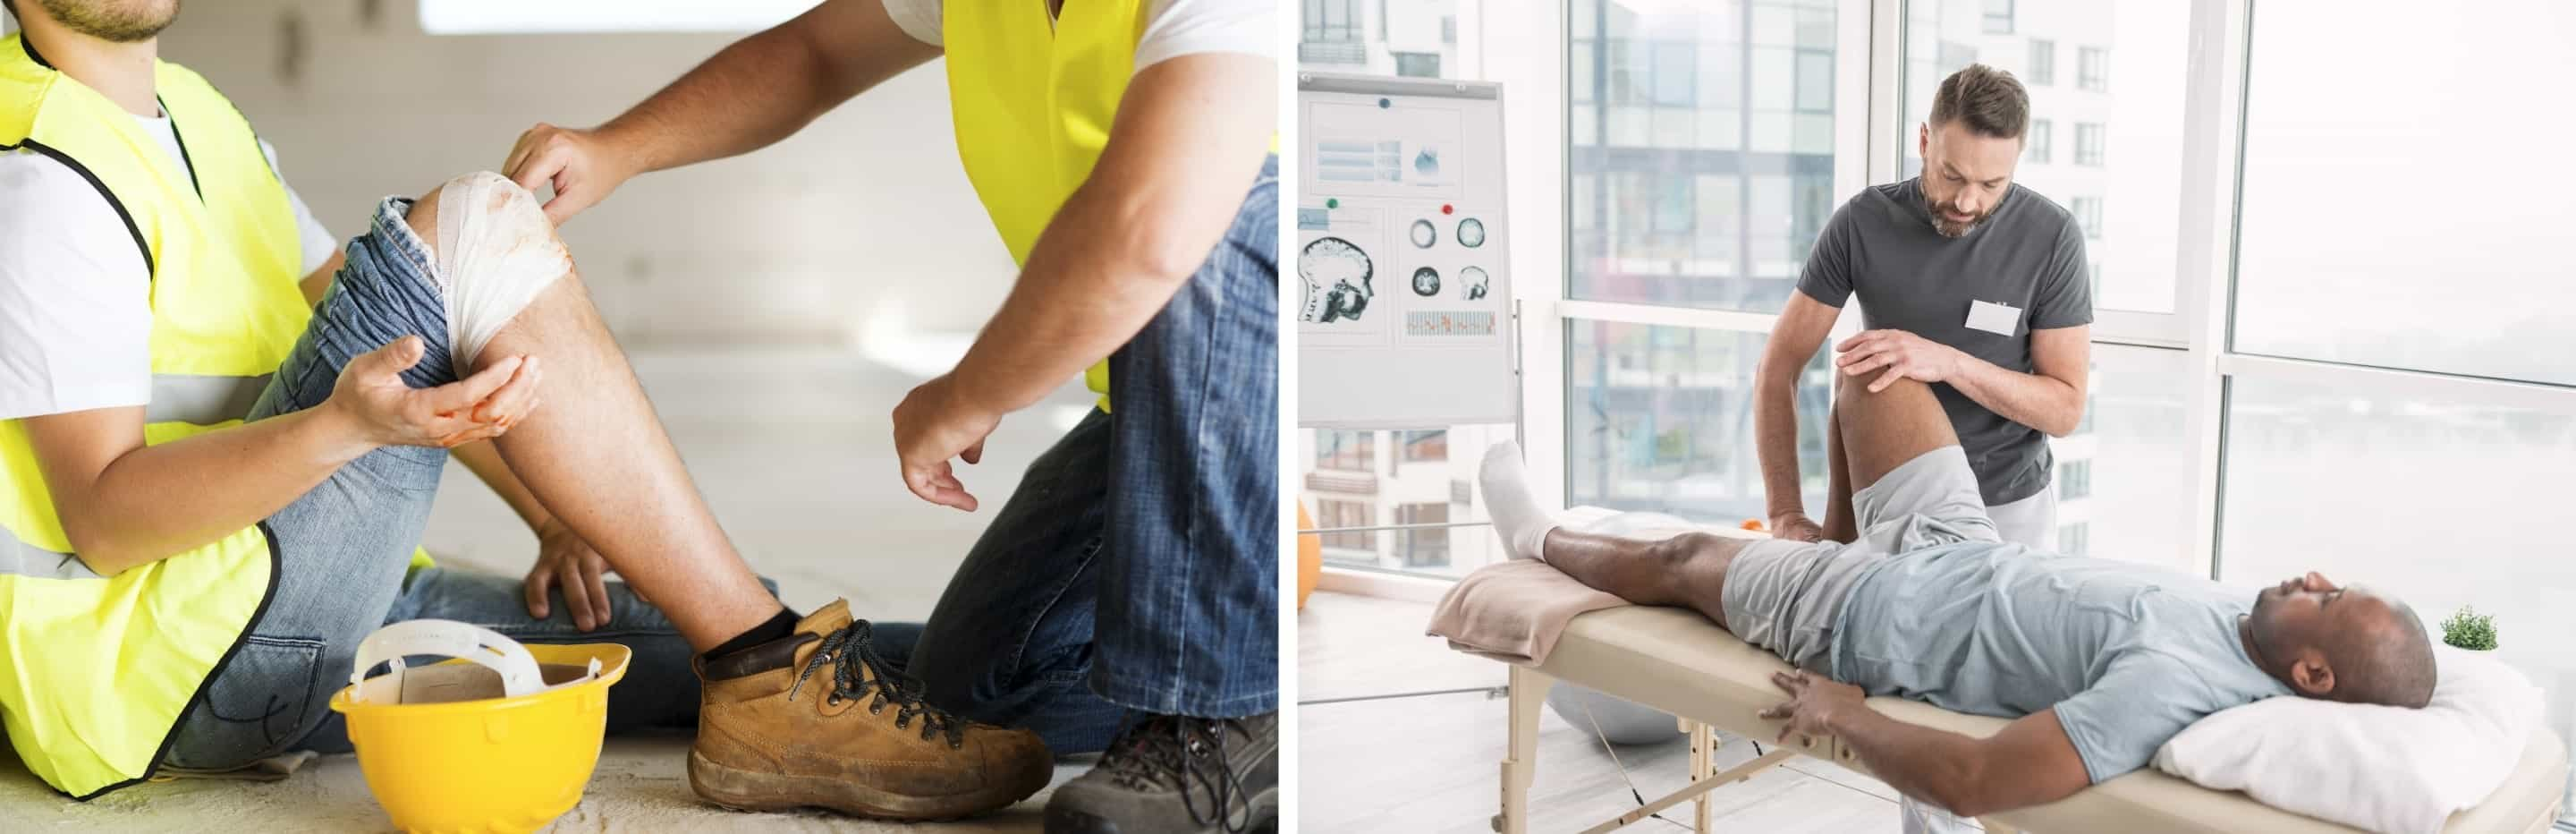 workers-comp-when-there-is-an-injury-on-the-job-trust-our-team-for-expert-care